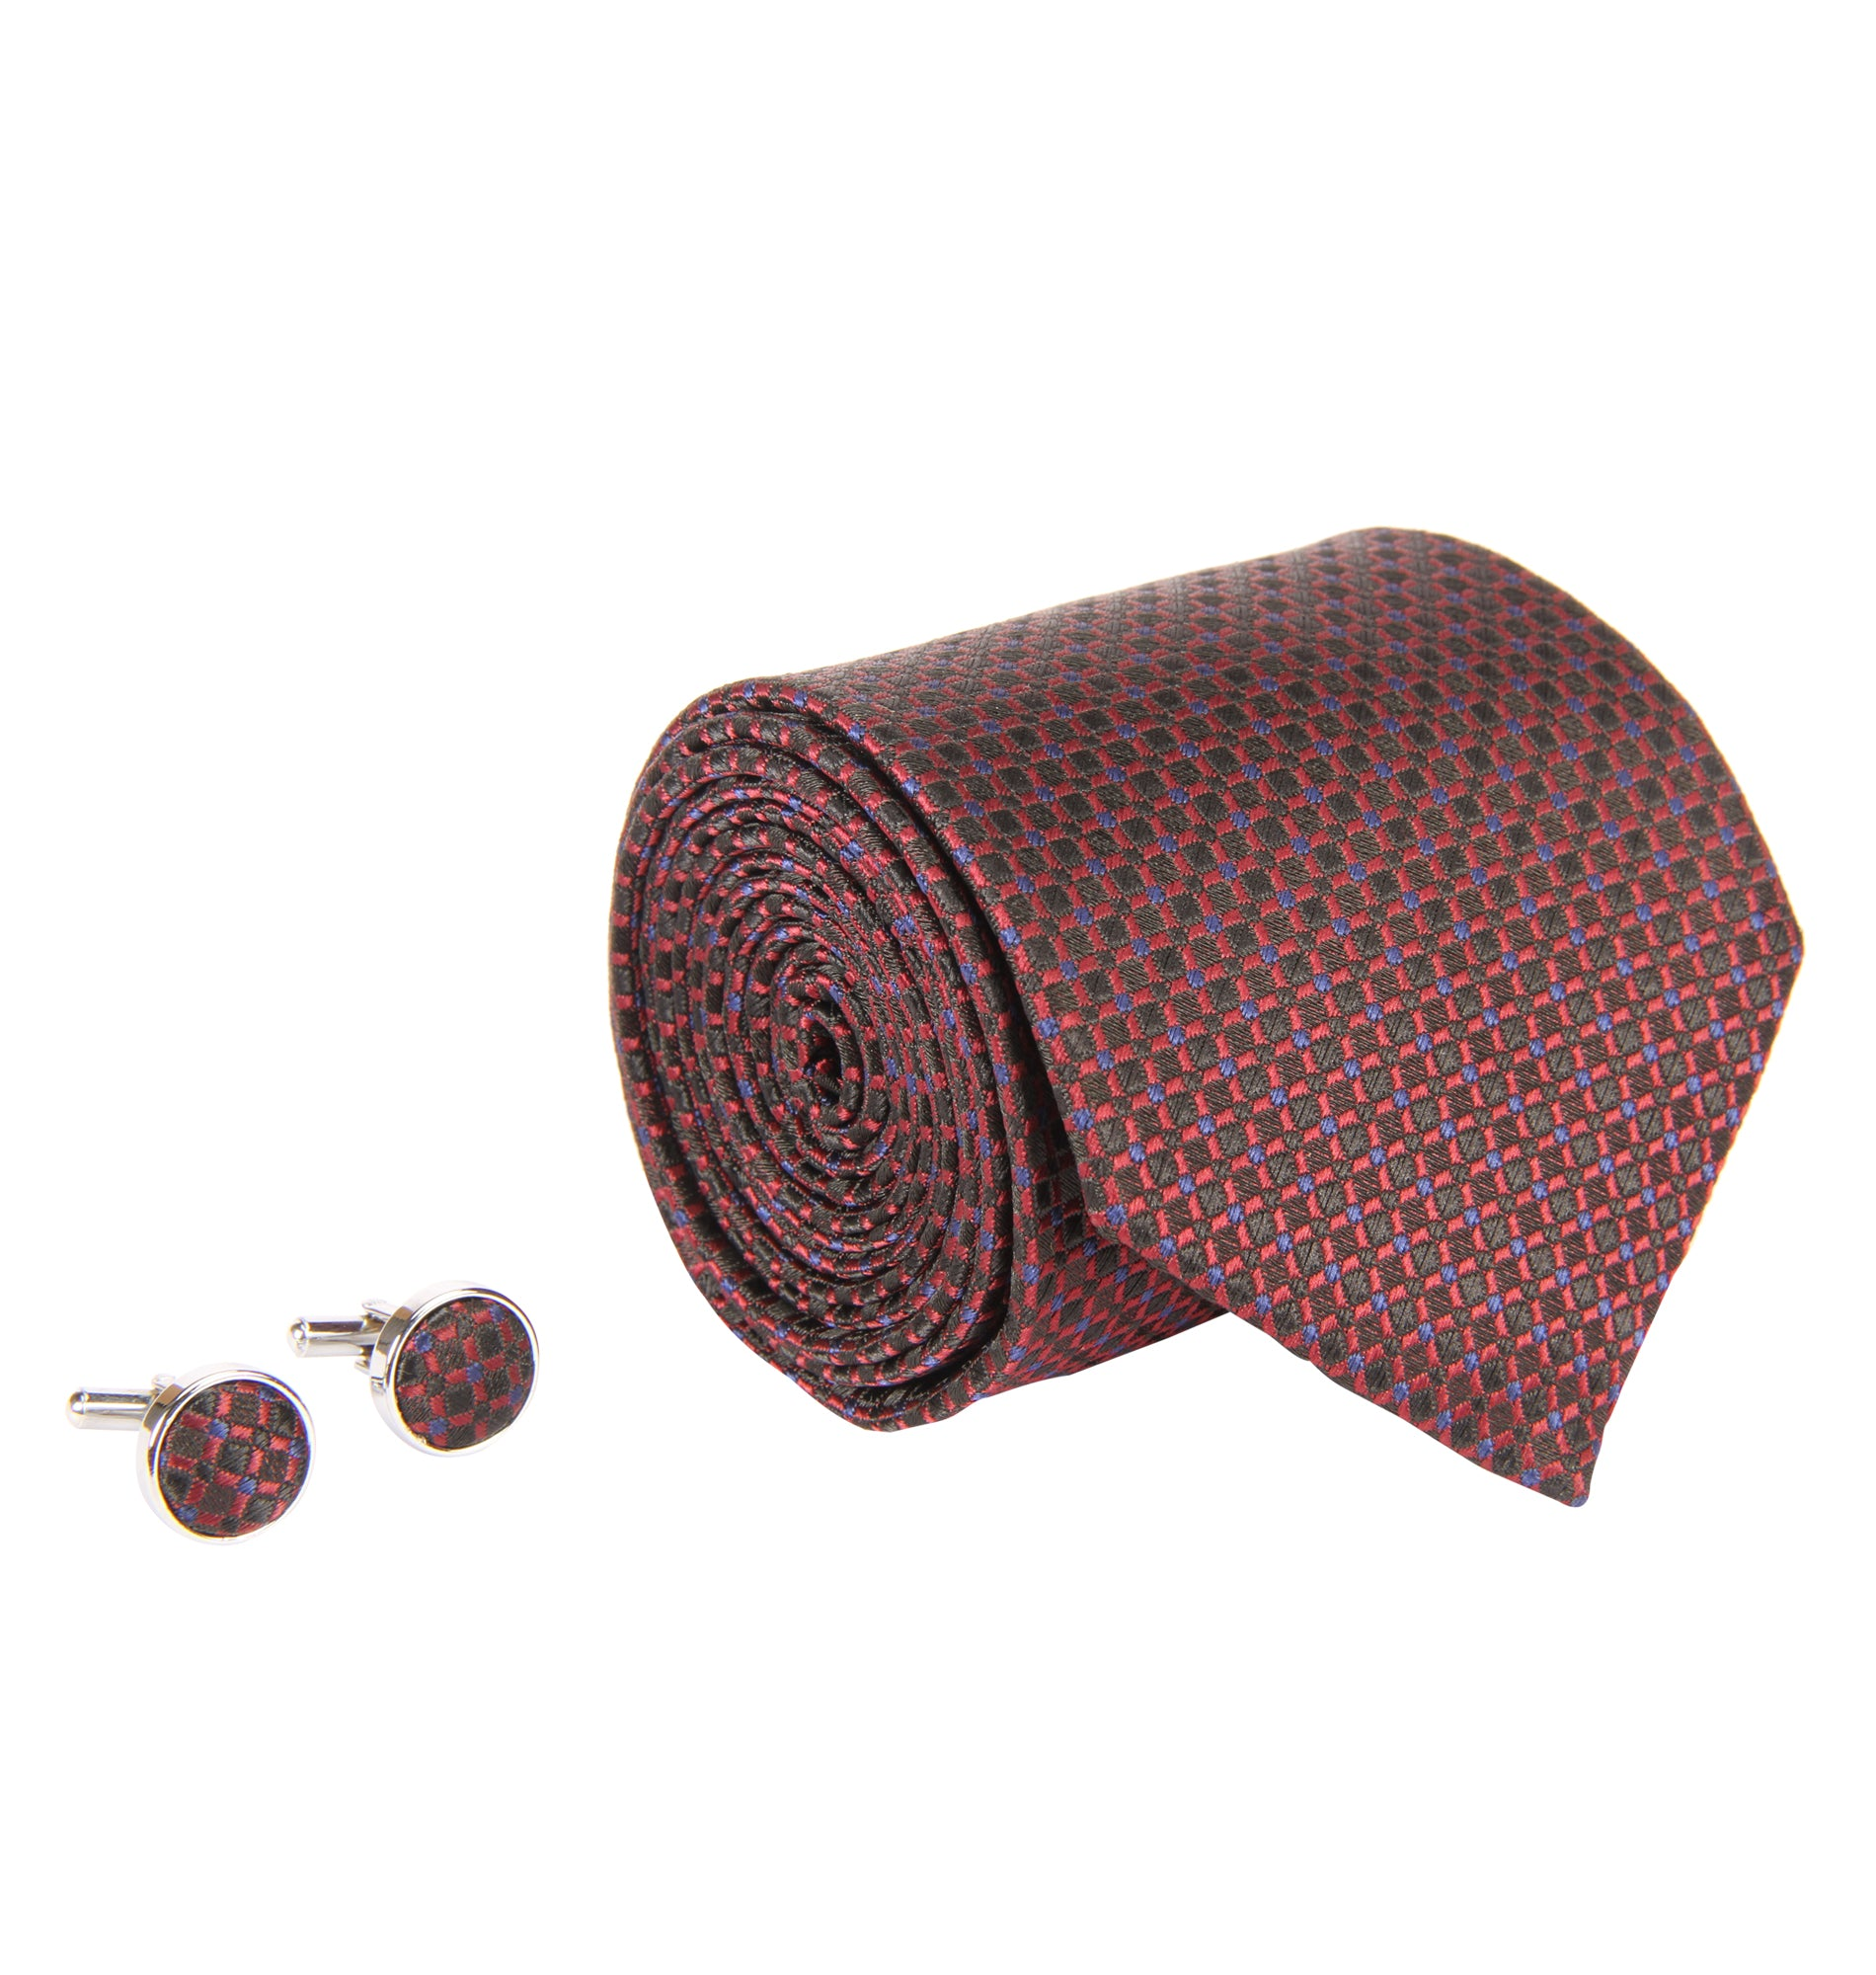 ZIDO Tie Cufflink Combos for Men TNC057